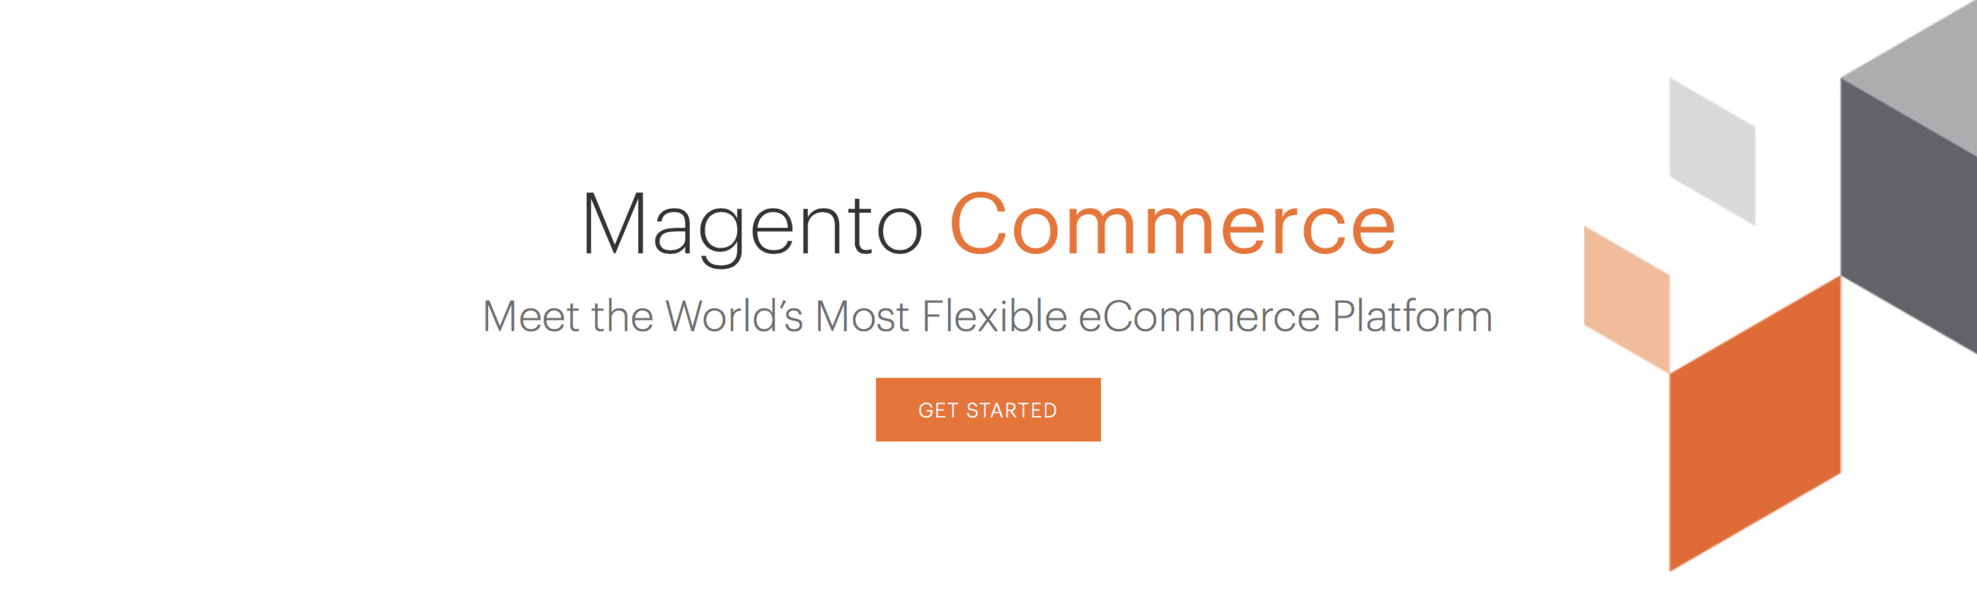 magento commerce.png